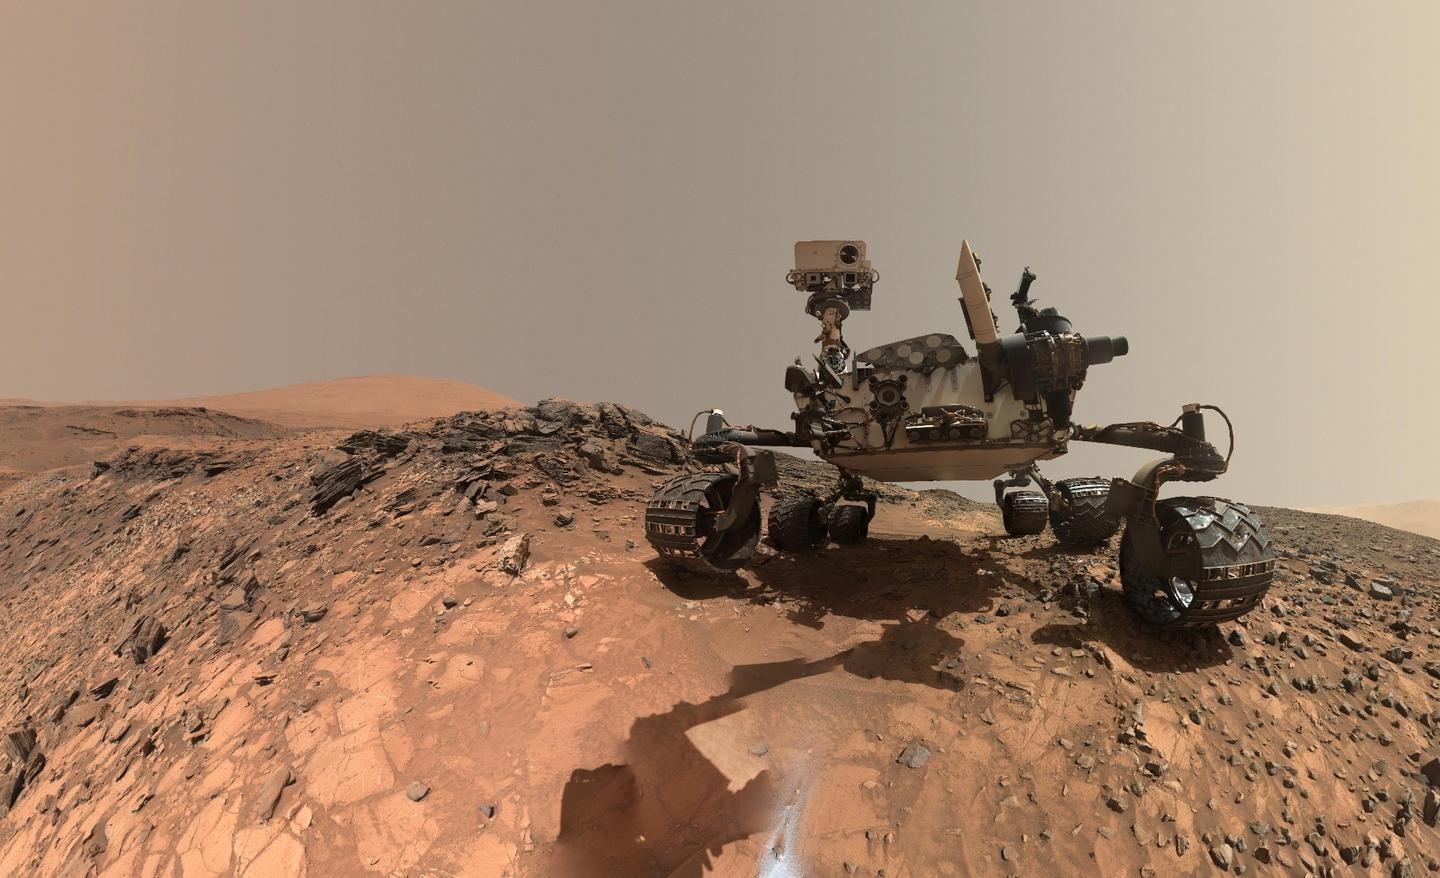 A self-portrait of the Curiosity rover, which has found signs of organic molecules on Mars